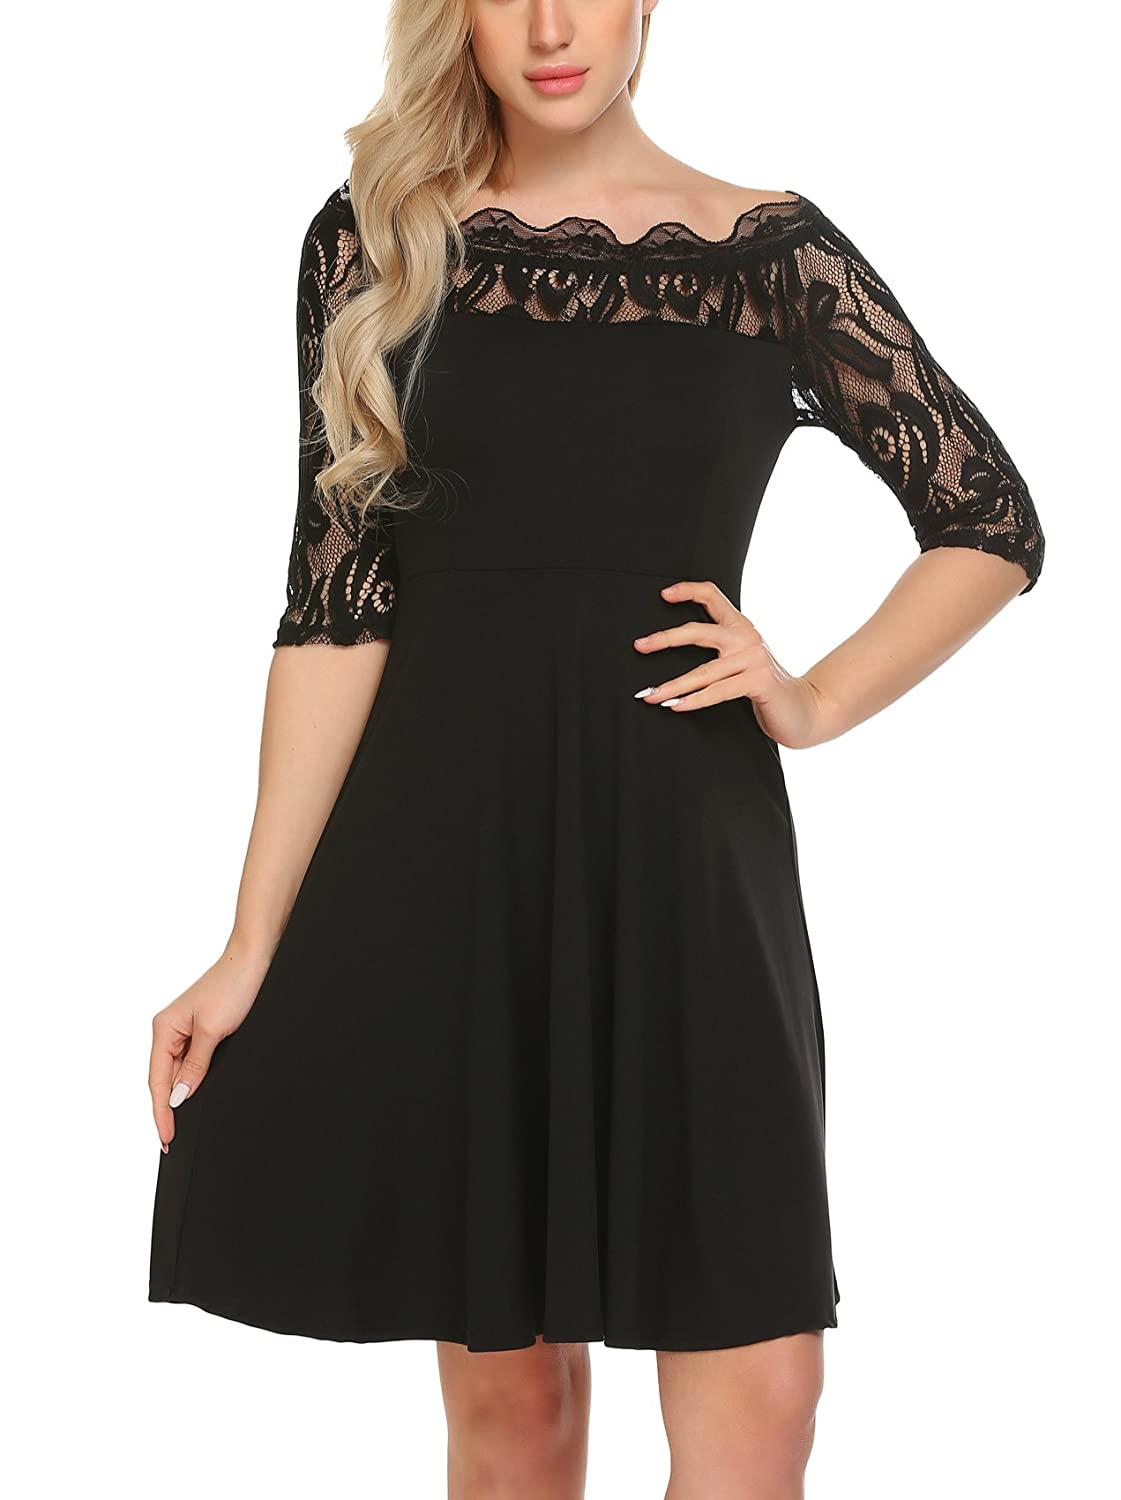 11b571efab12 Showyoo Women s Off The Shoulder Lace Sleeve Party Cocktail Swing Dress at  Amazon Women s Clothing store